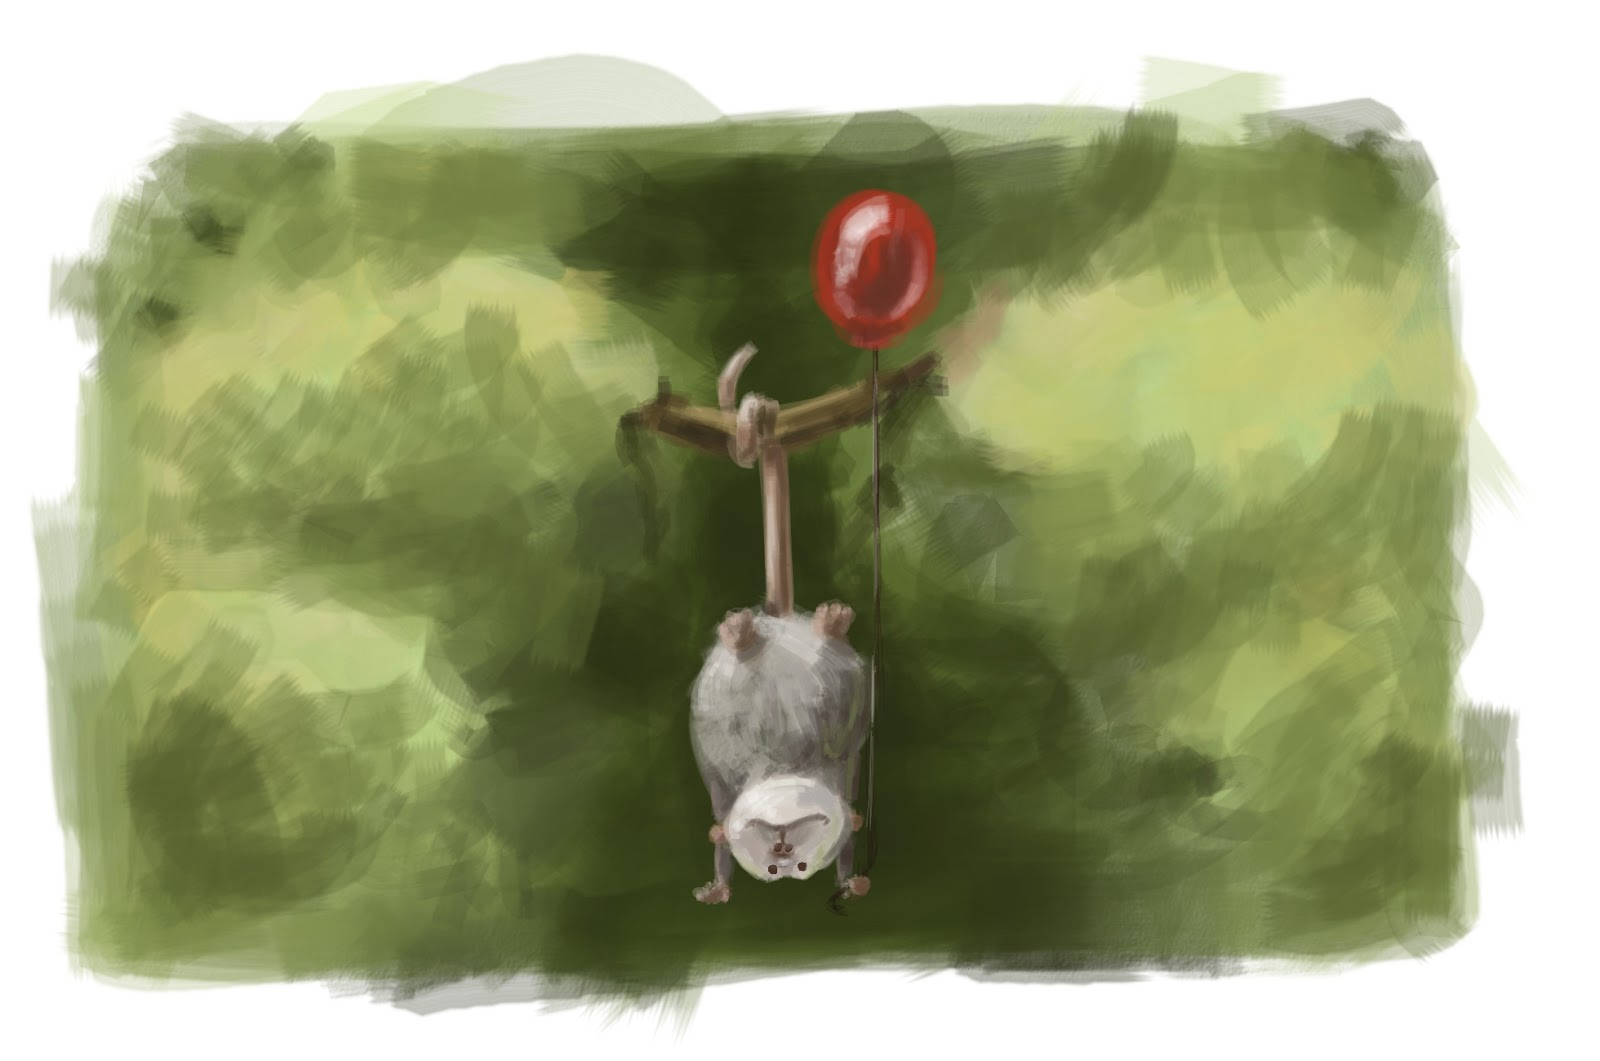 has anyone seen my glasses   animals holding a red balloon